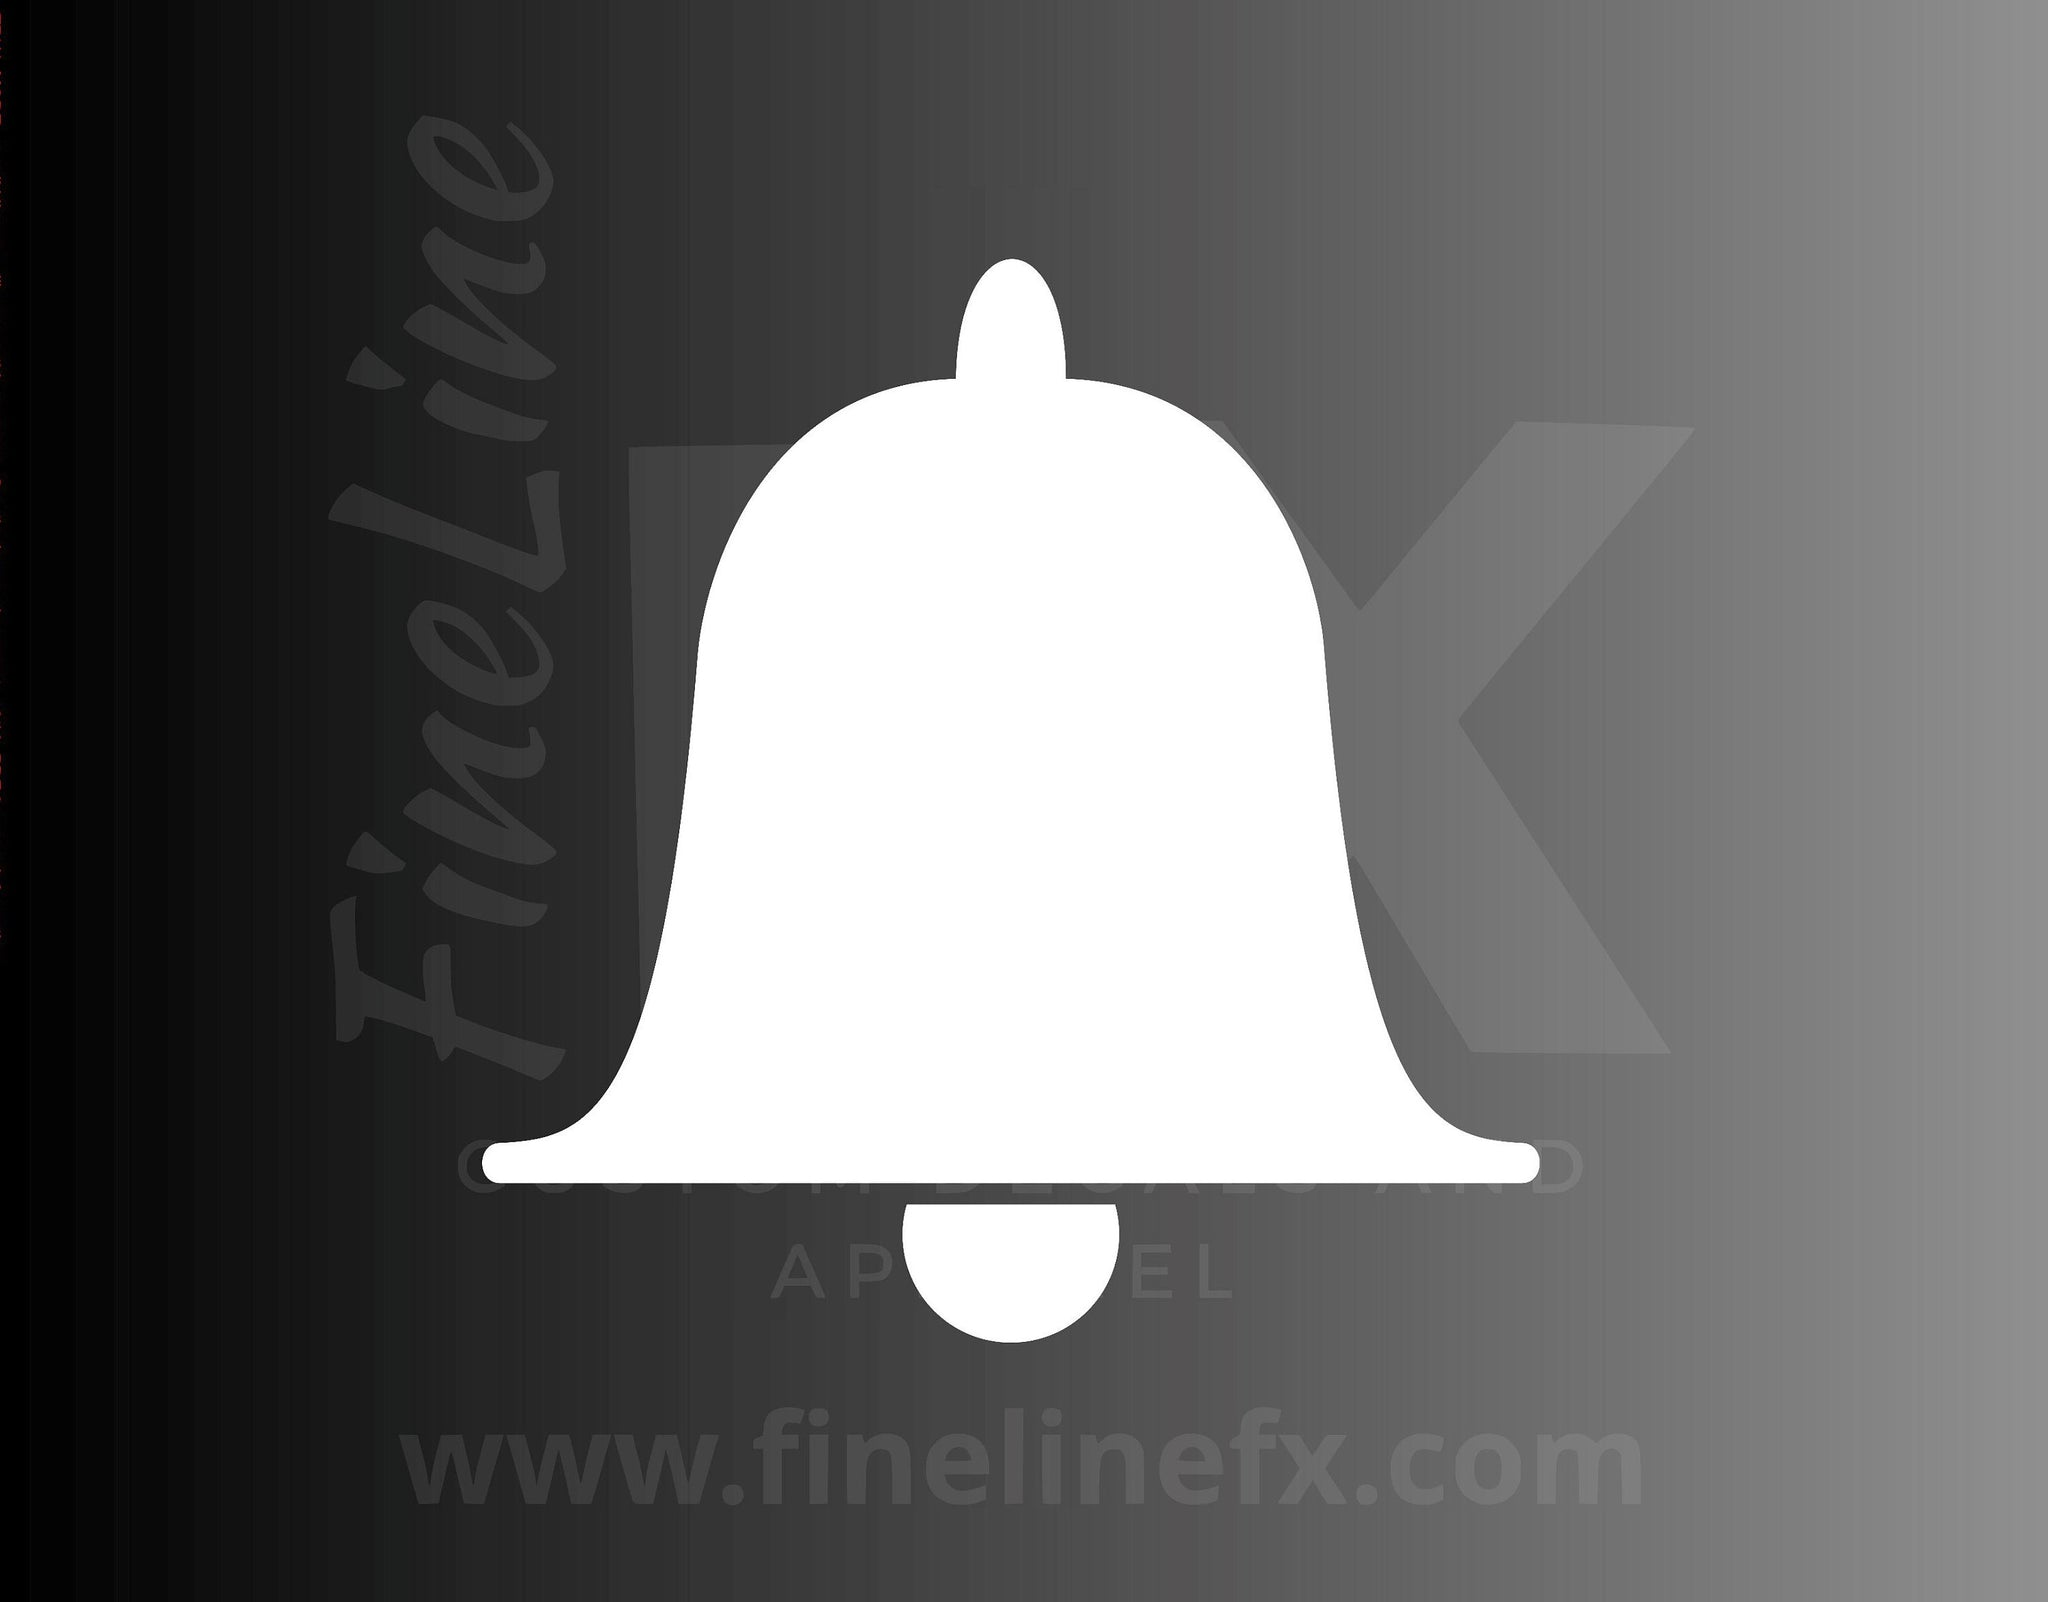 Bell Alert Attention Icon Vinyl Decal Sticker